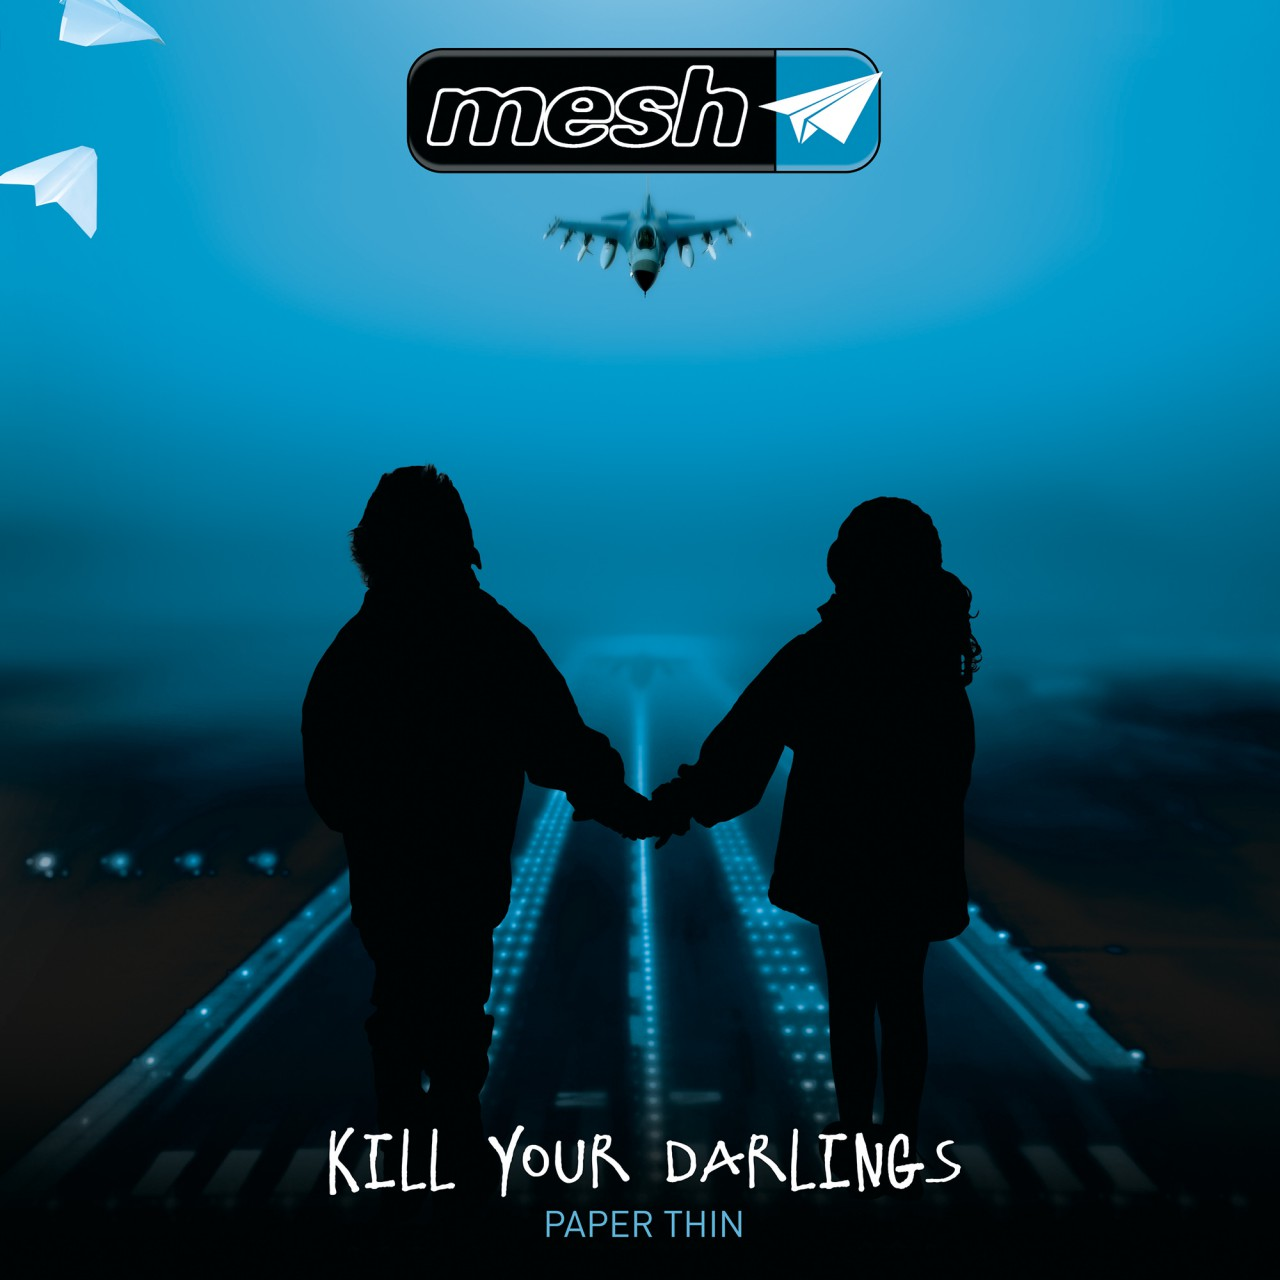 mesh Kill Your Darlings 2016